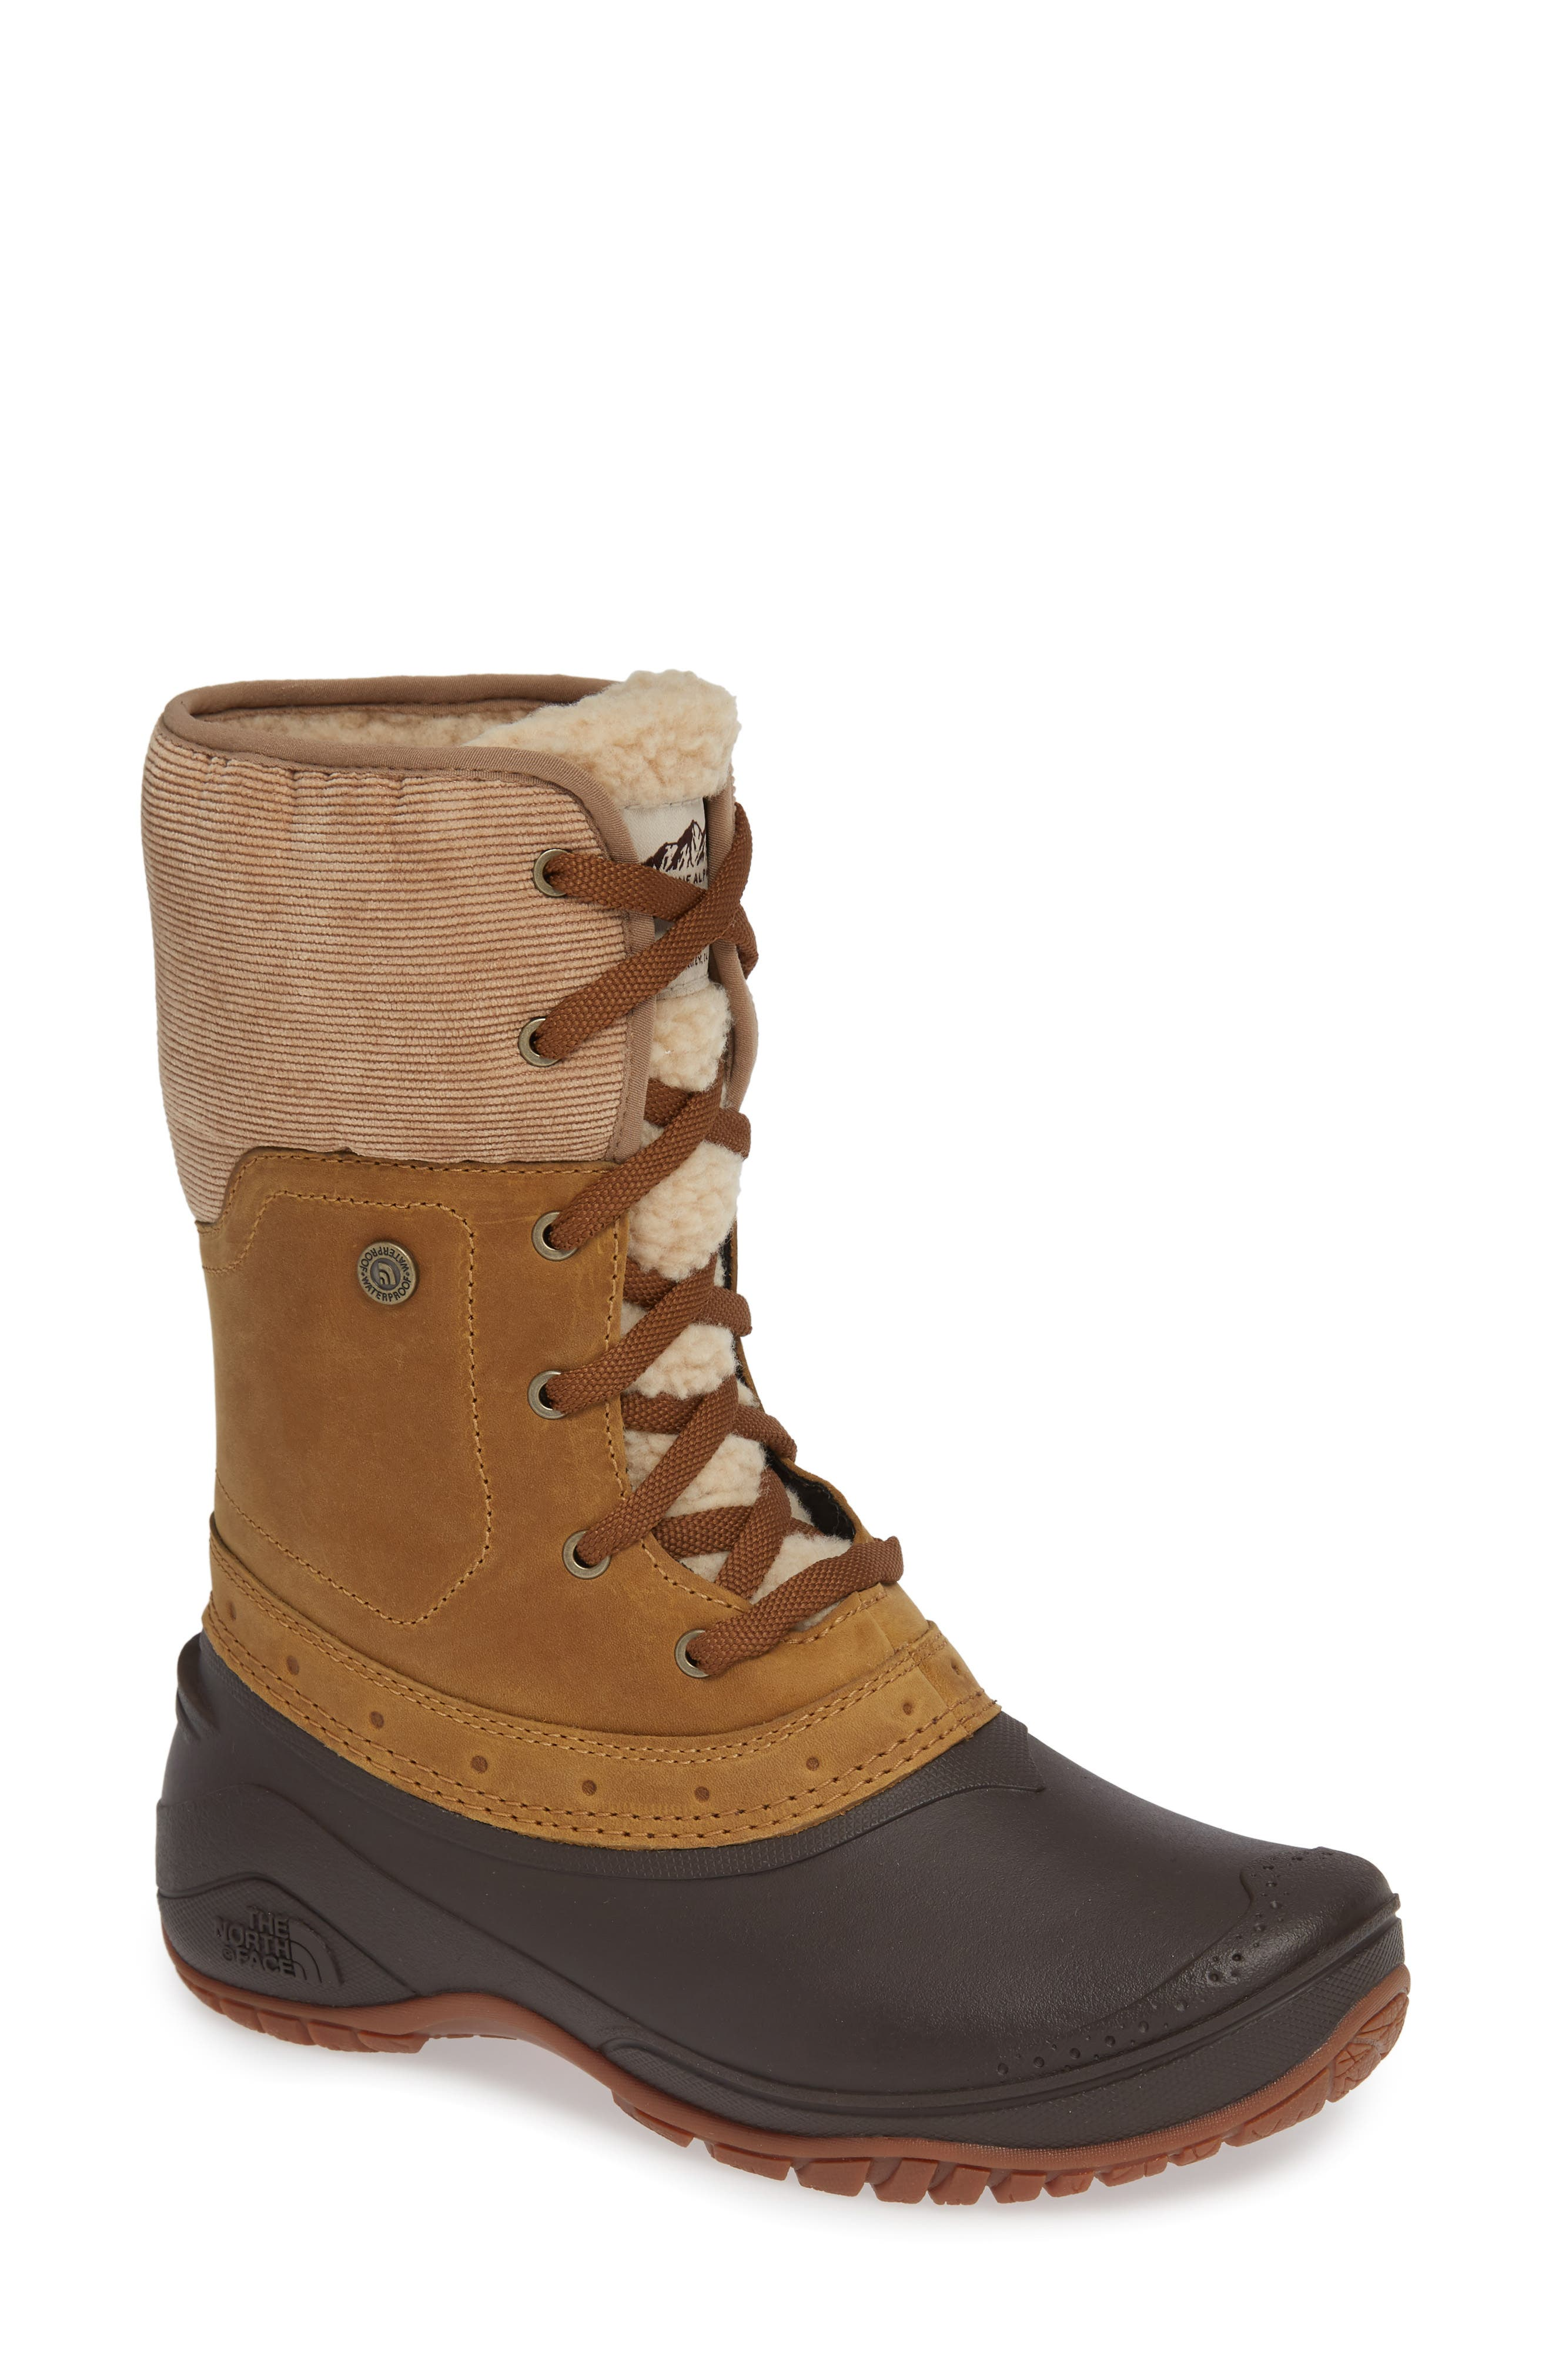 Shellista Roll Cuff Waterproof Insulated Winter Boot,                             Main thumbnail 1, color,                             GOLDEN BROWN/ COFFEE BROWN